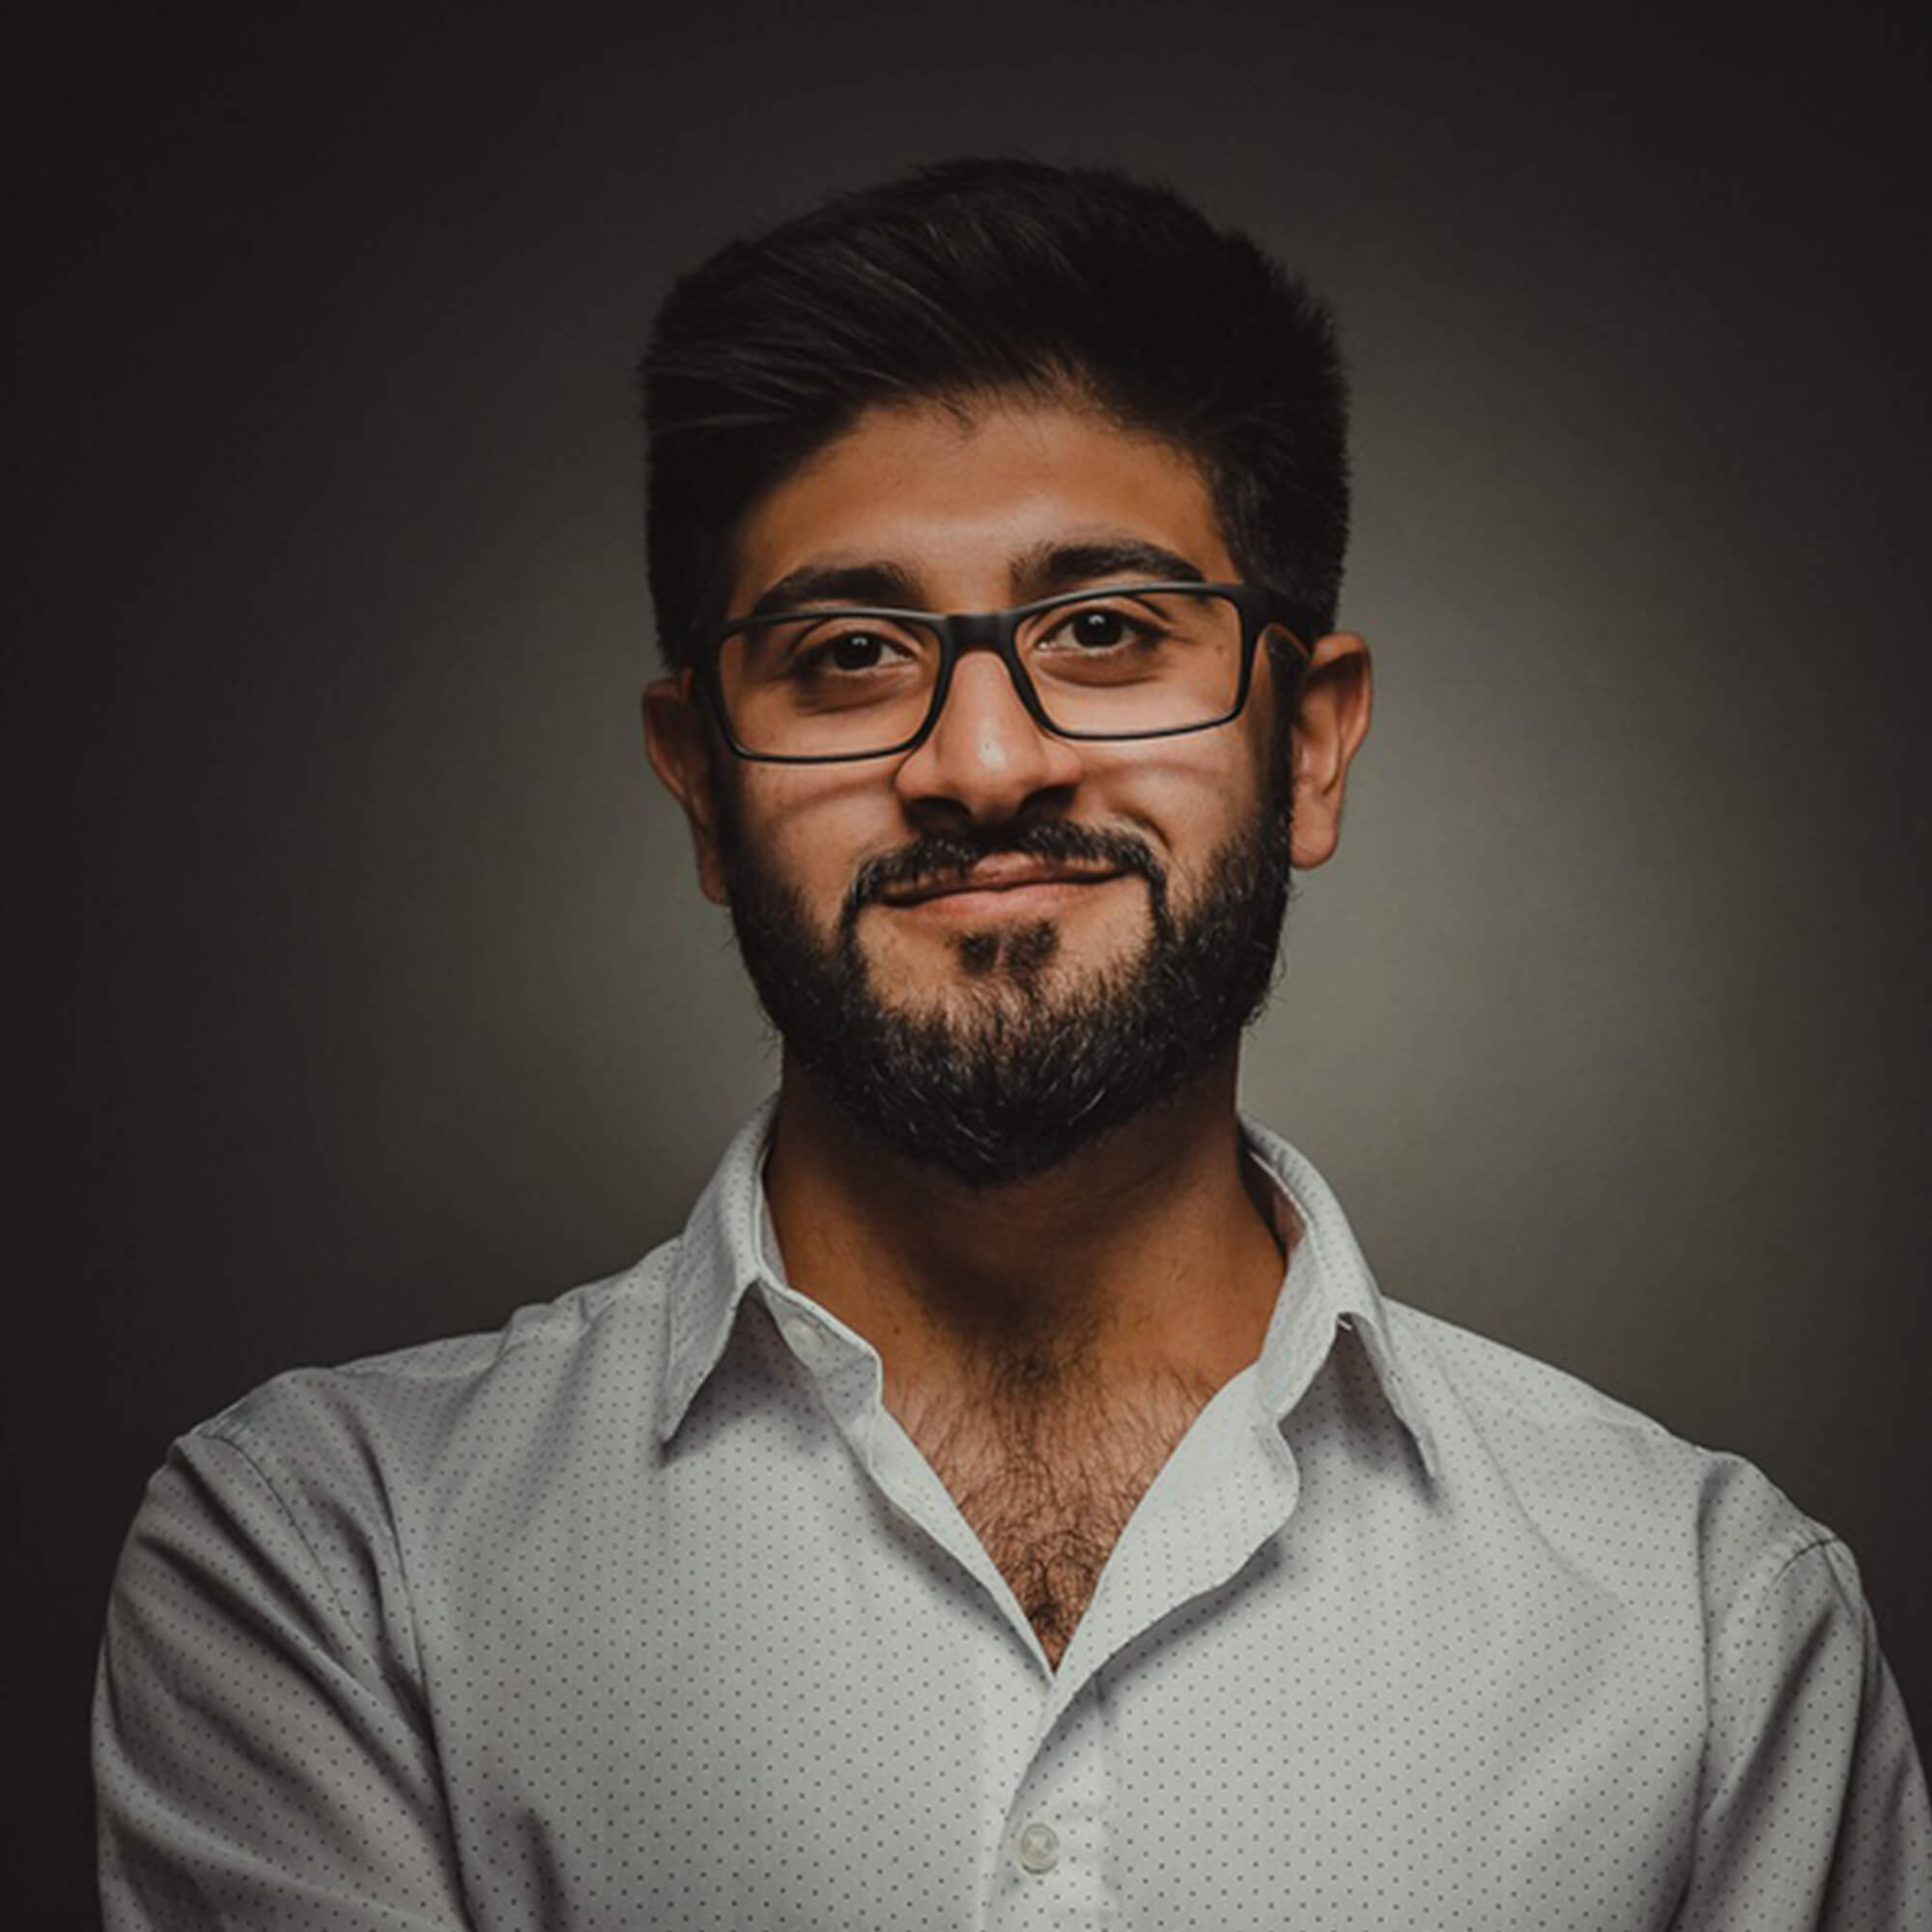 Omar wearing a white shirt and glasses.